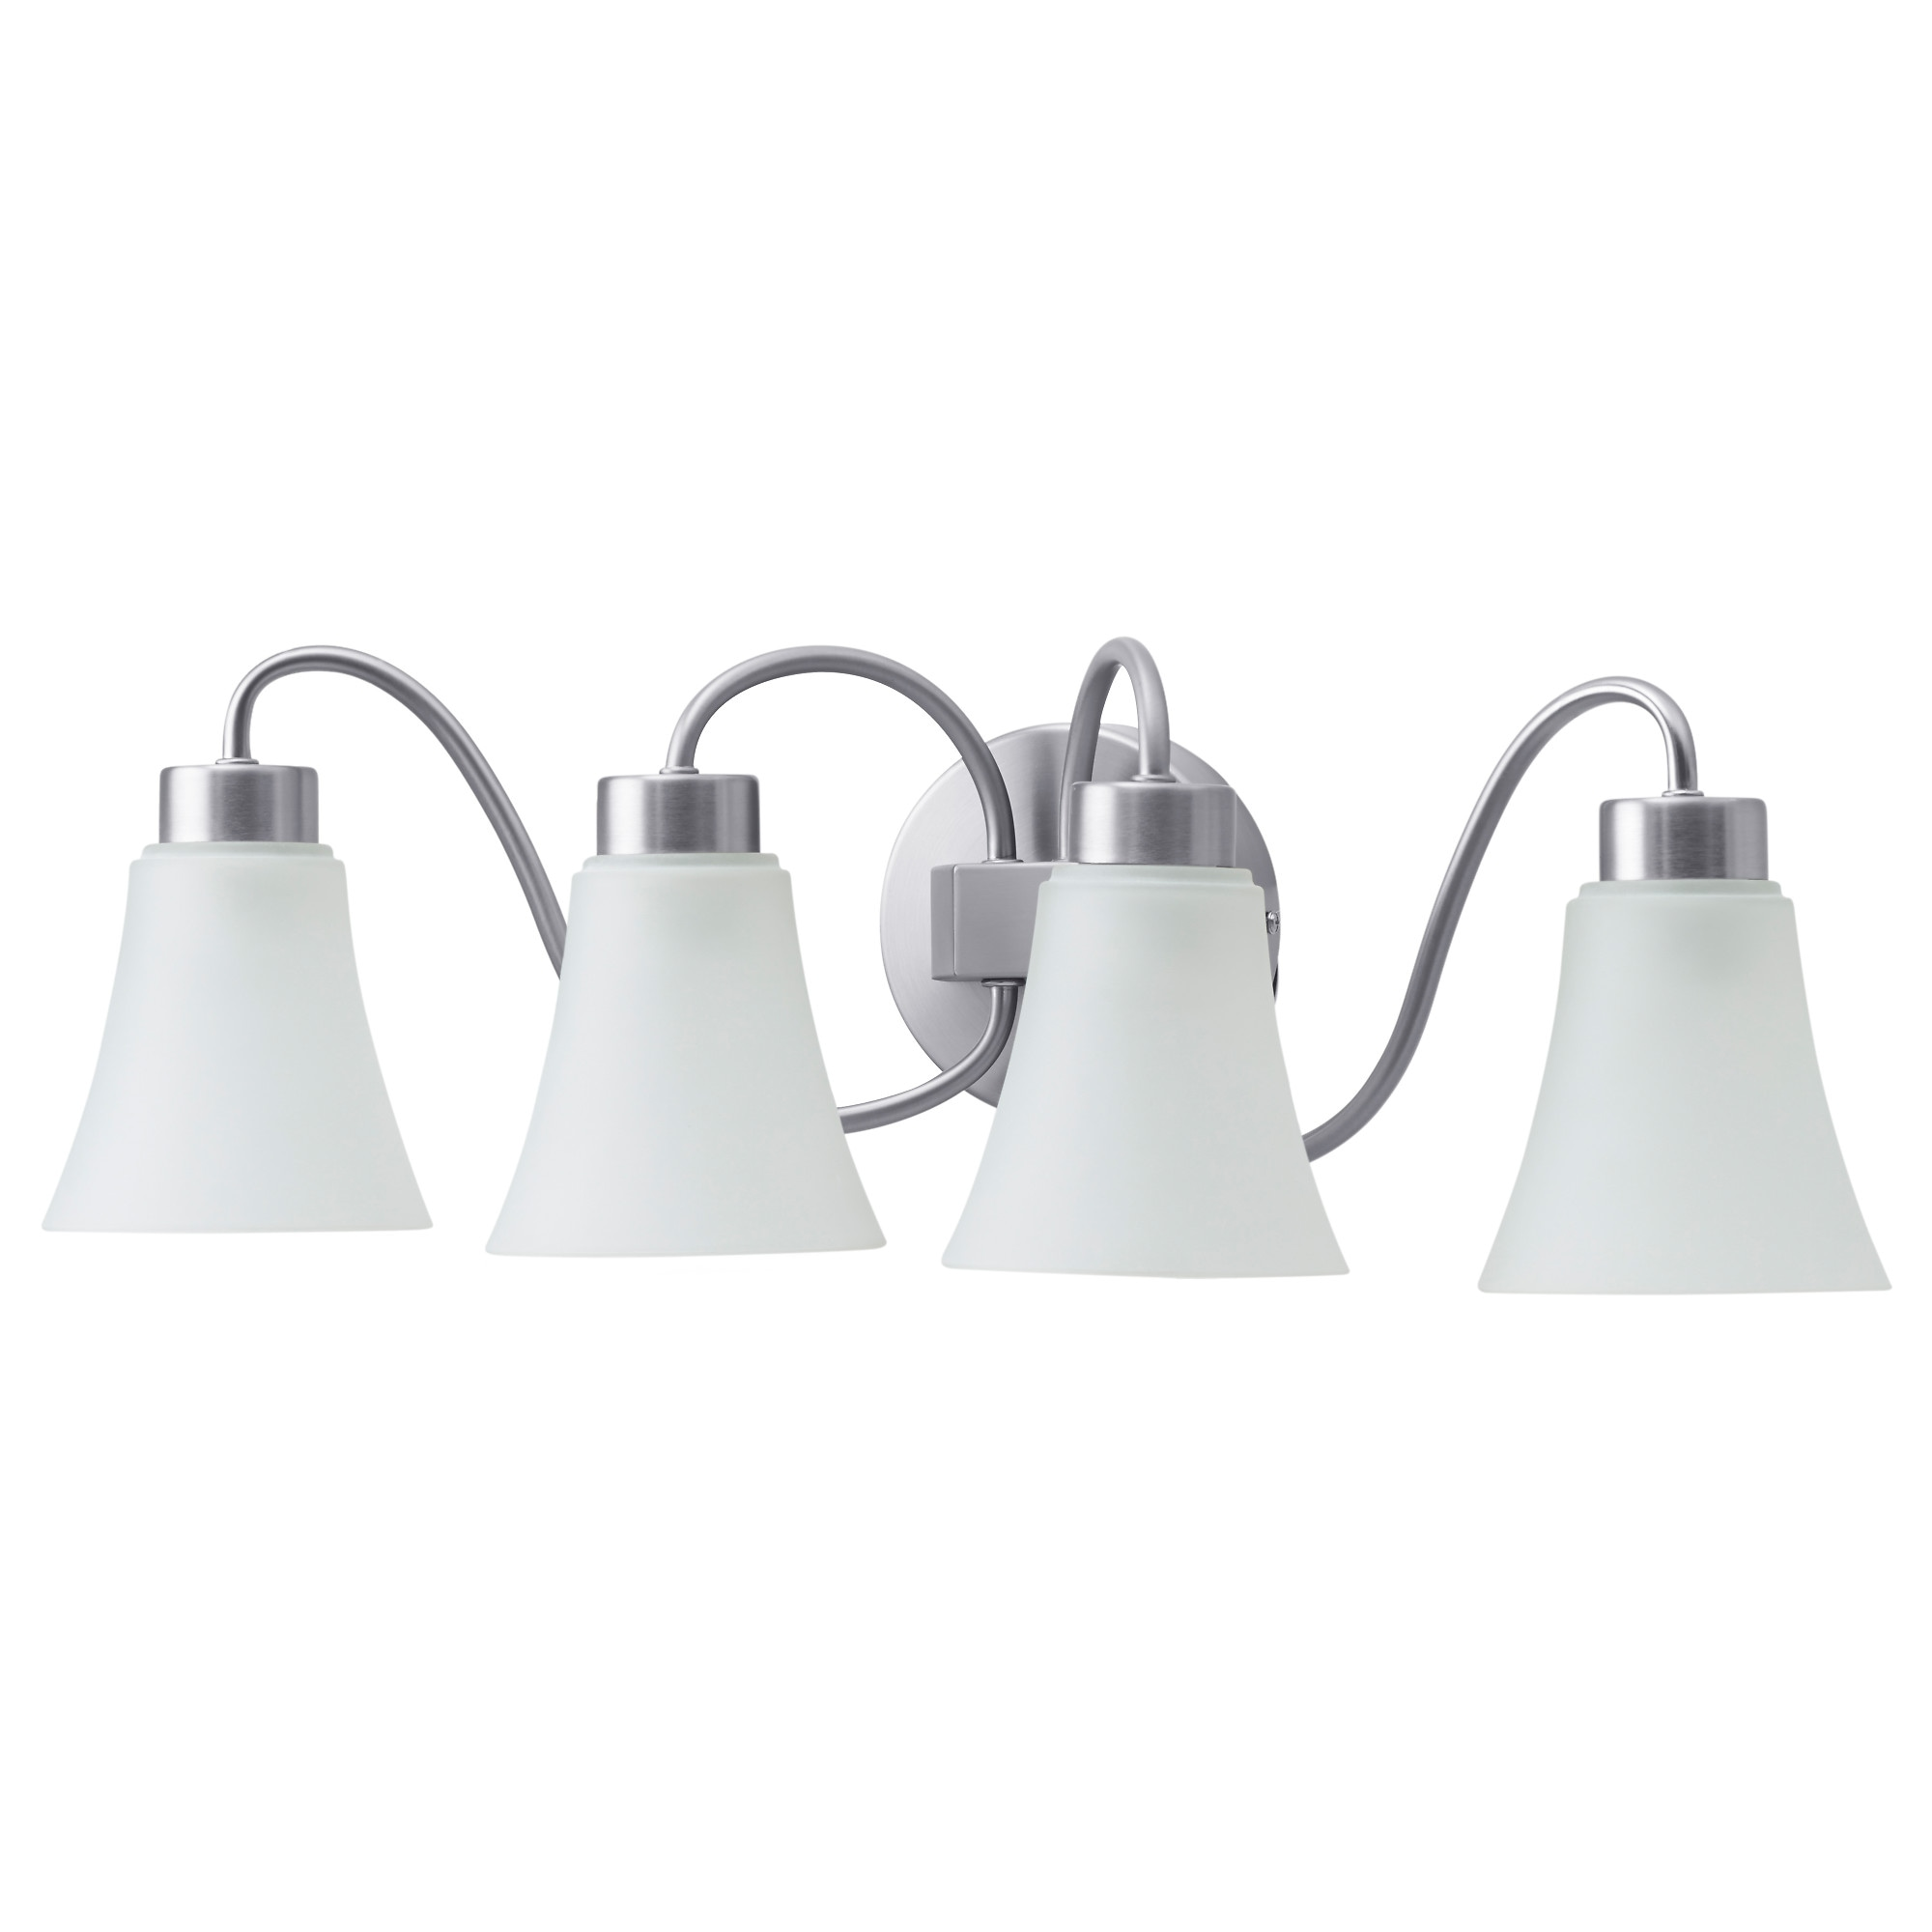 Superbe VALLHALL Wall Lamp, 4 Spots